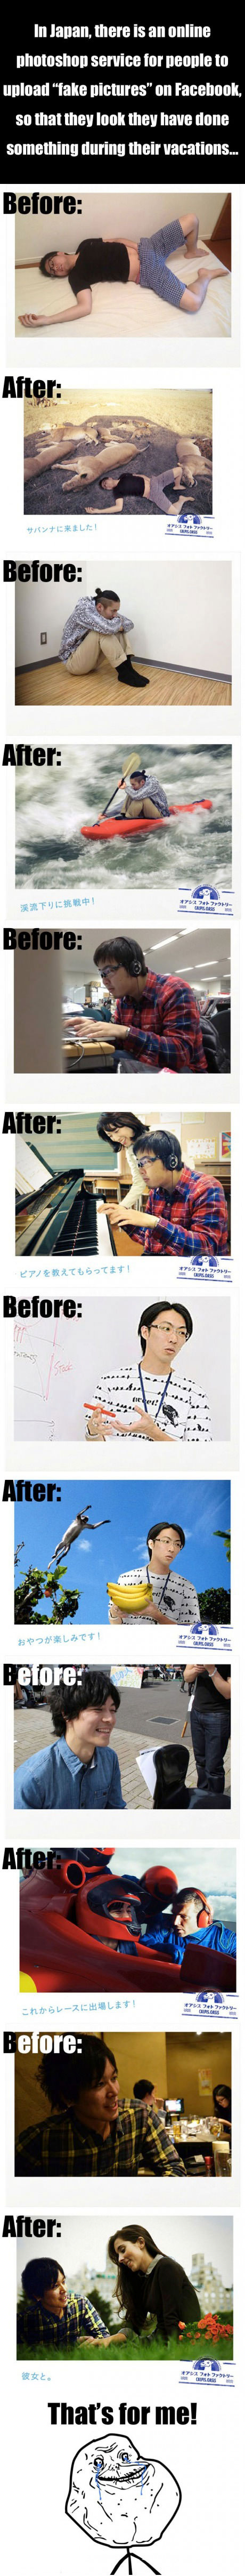 japan, photoshop, service, fake, facebook, before, after